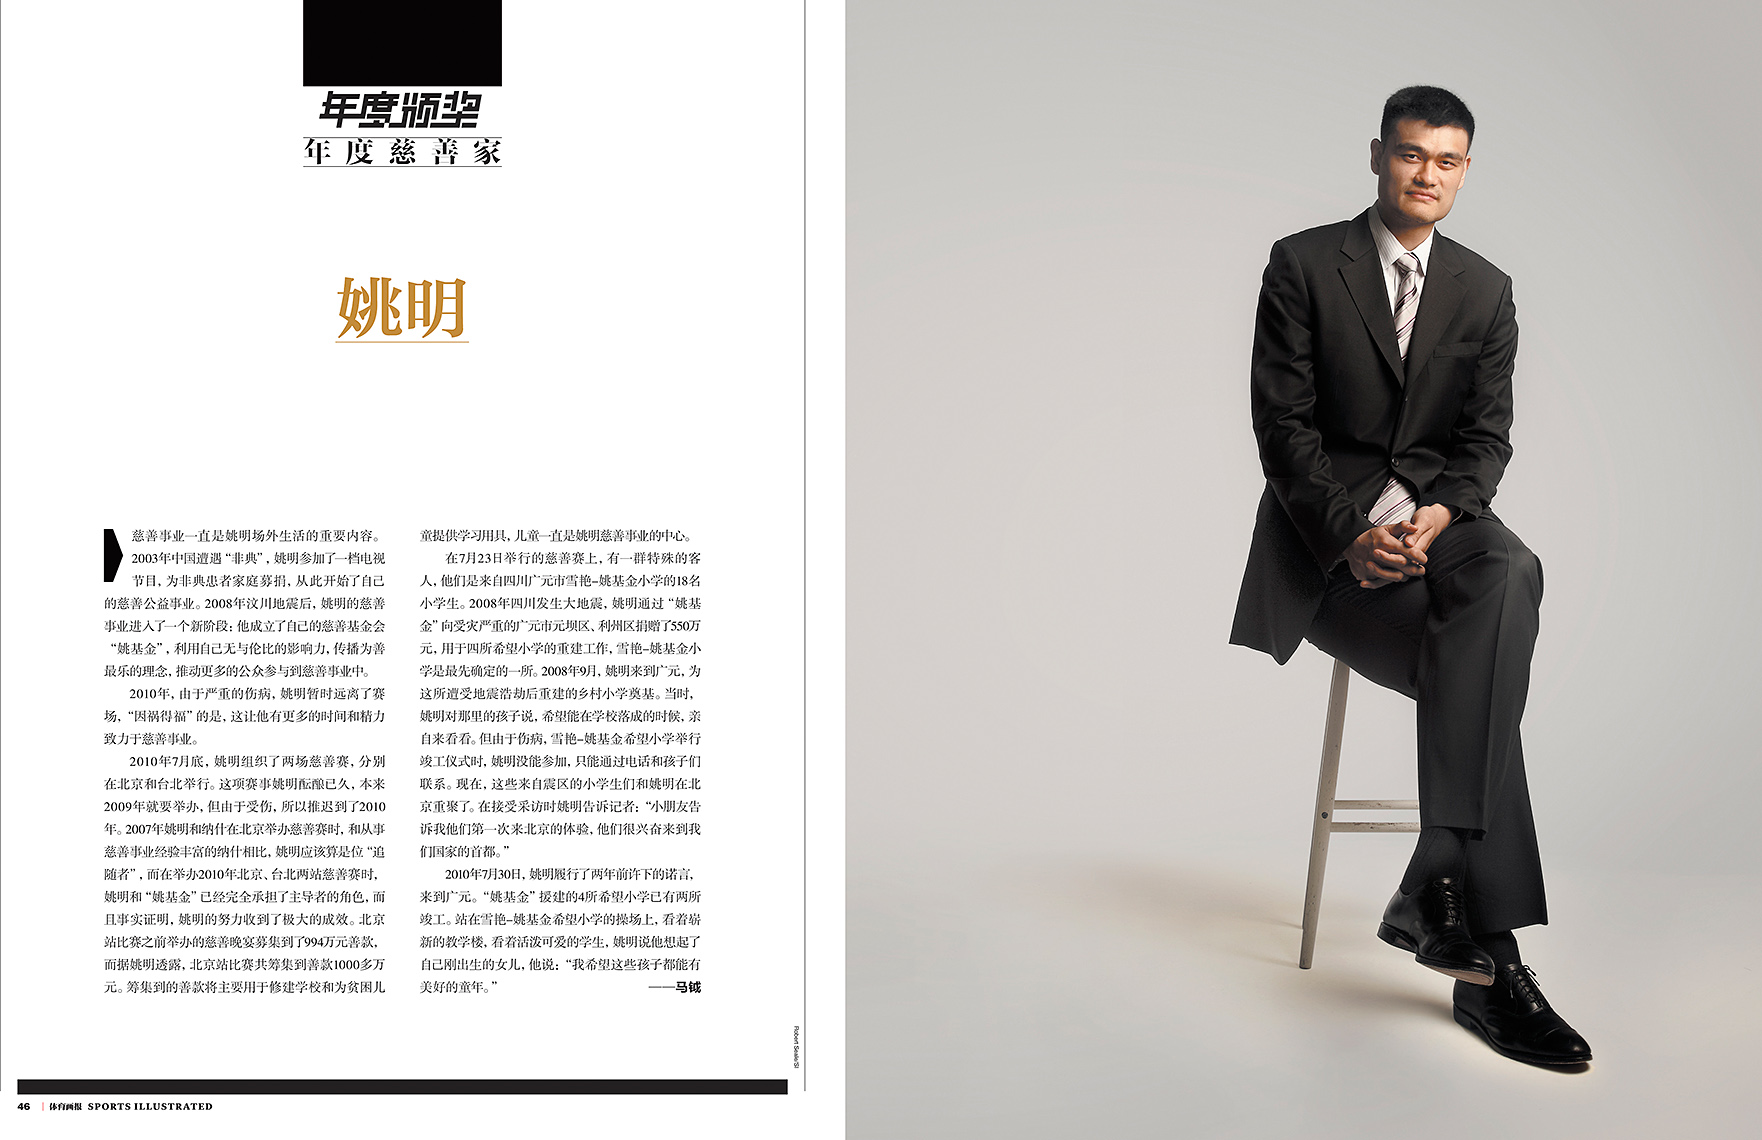 SI_China_Yao_spread_2010